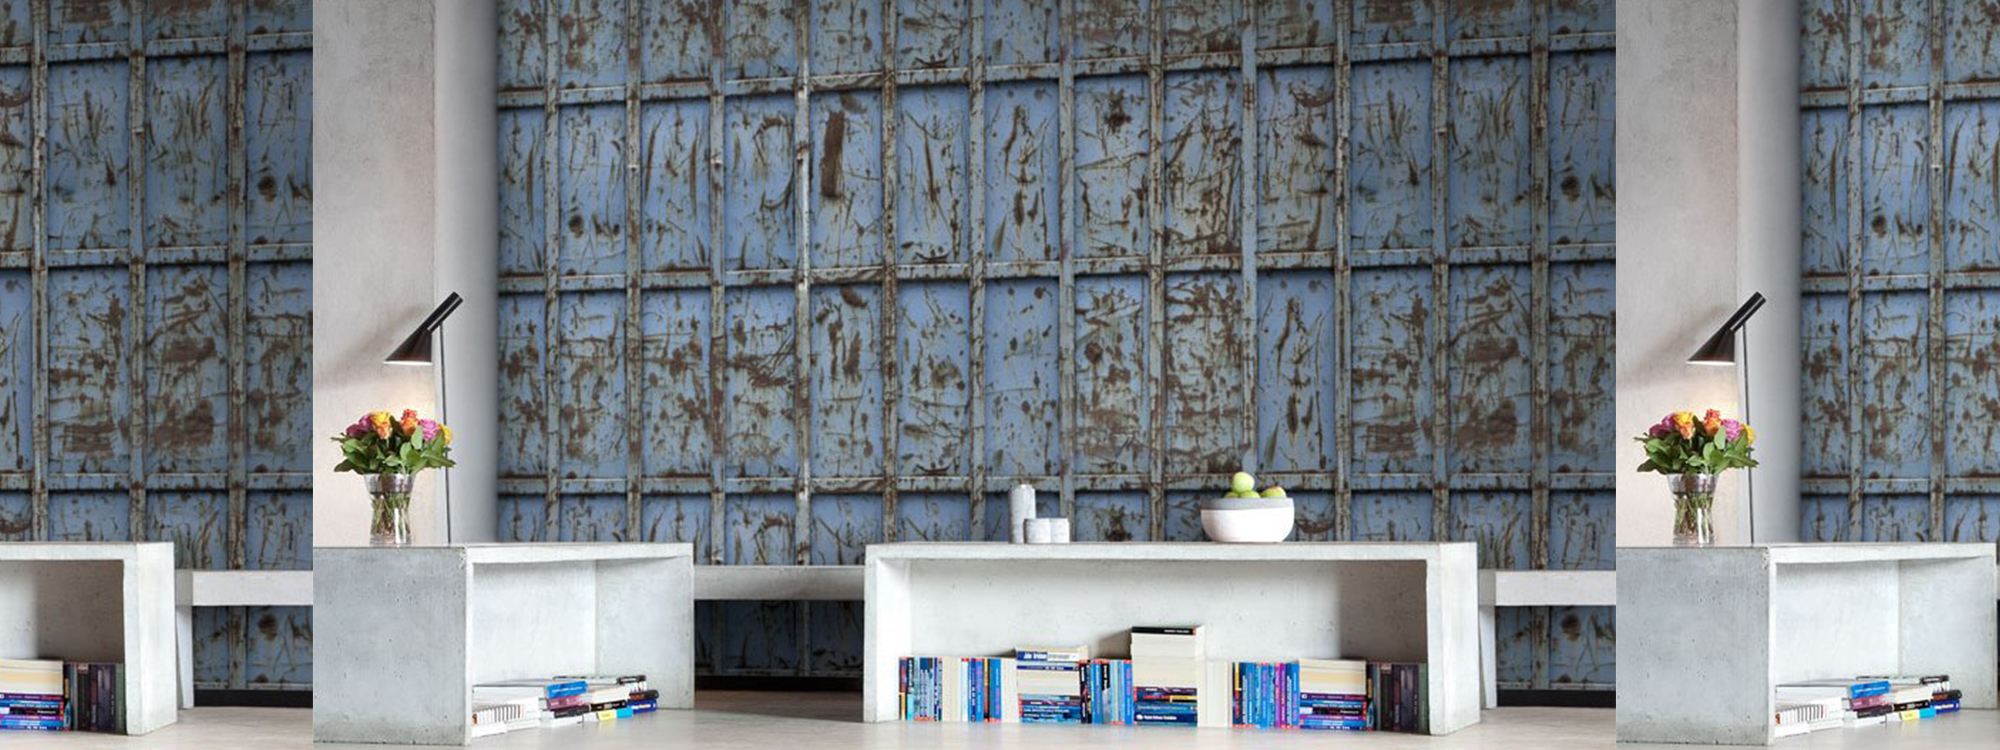 INTERIORS TRENDS: UNFINISHED BUSINESS